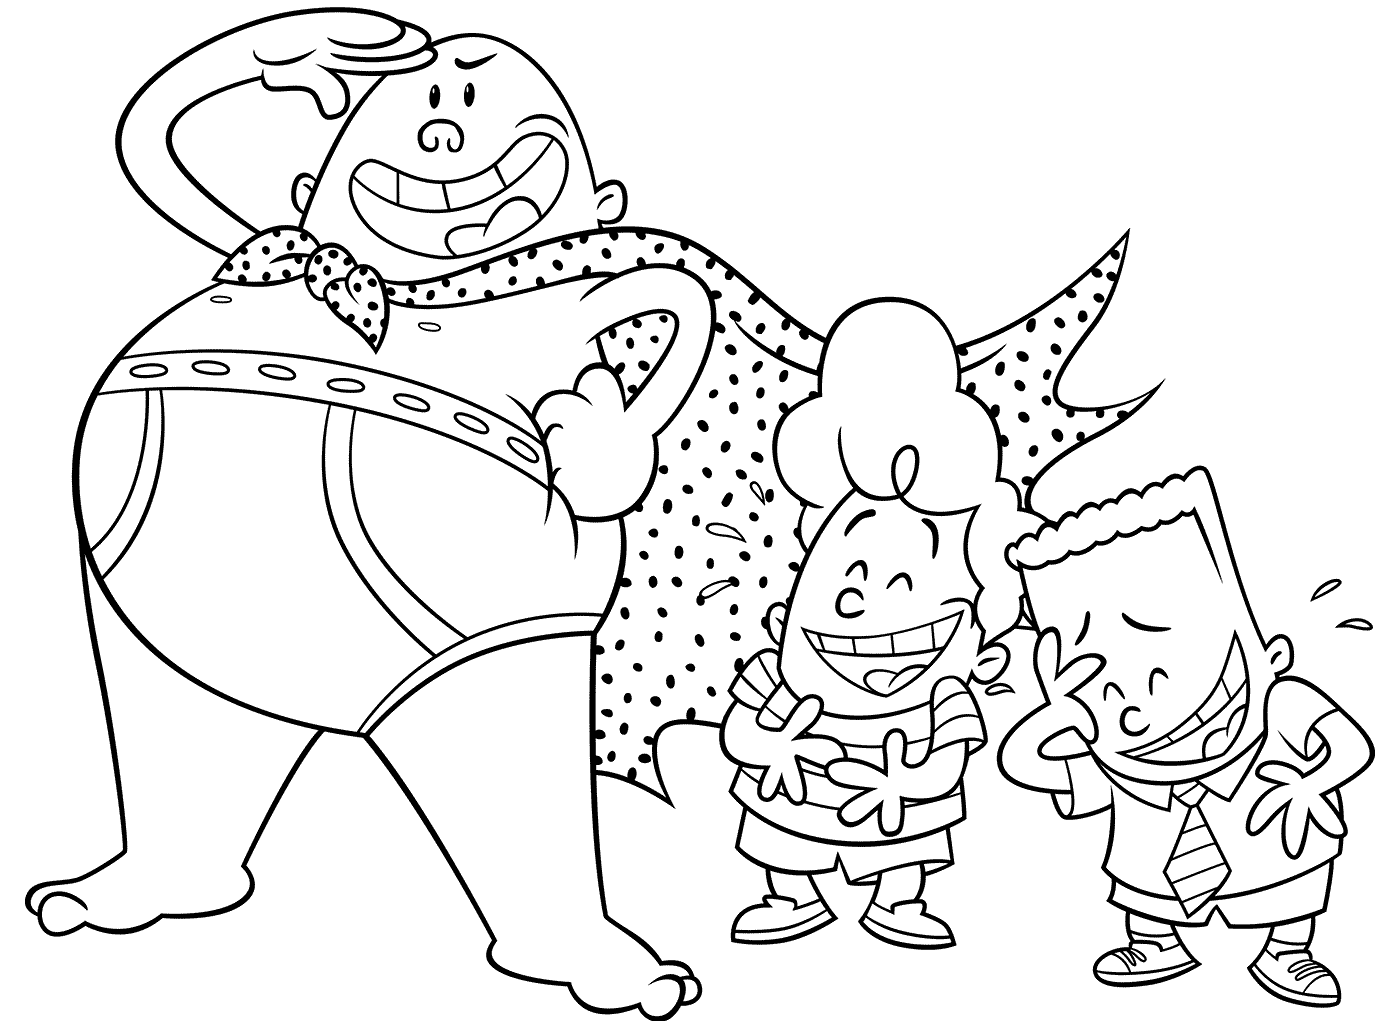 Captain Underpants Colouring Pages